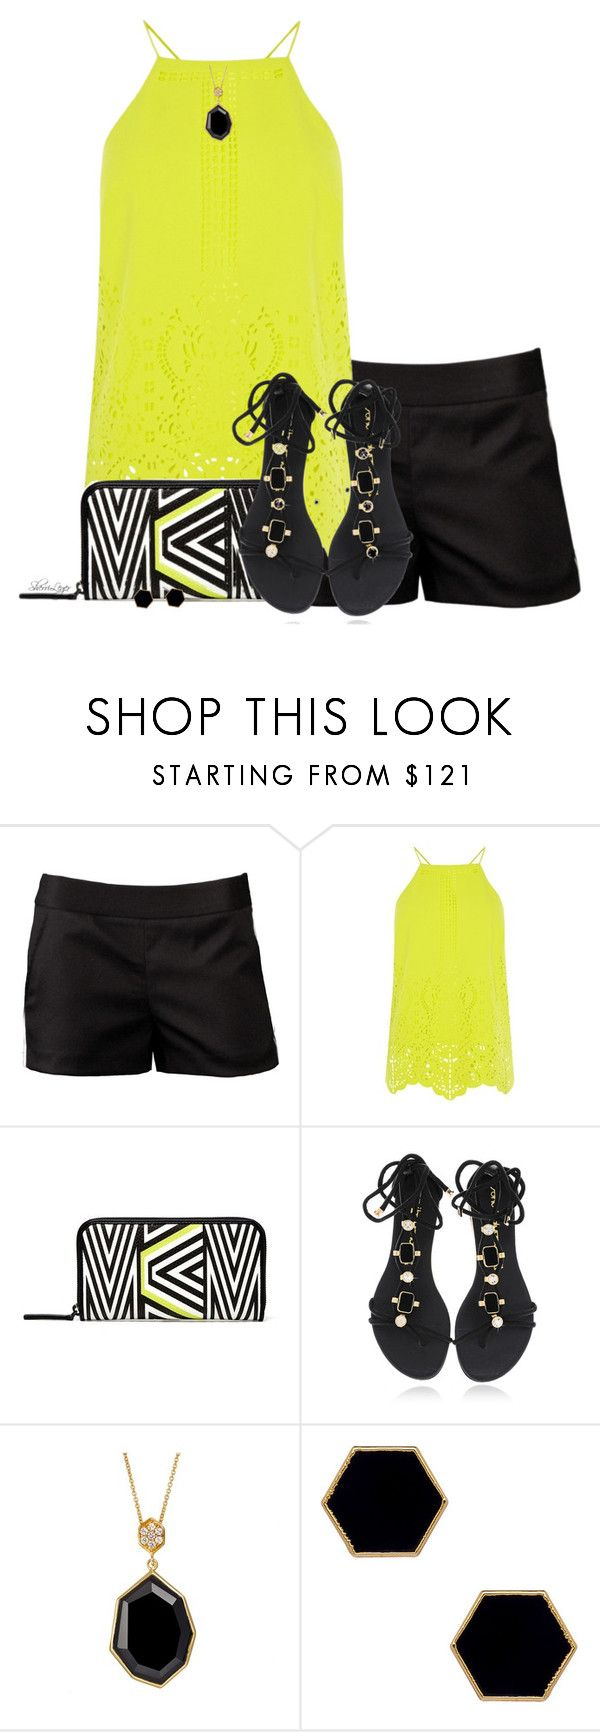 """""""Untitled #2505"""" by sherri-leger ❤ liked on Polyvore featuring PAM, Karen Millen, MCM, SOPHIE MILLER and Janna Conner Designs"""